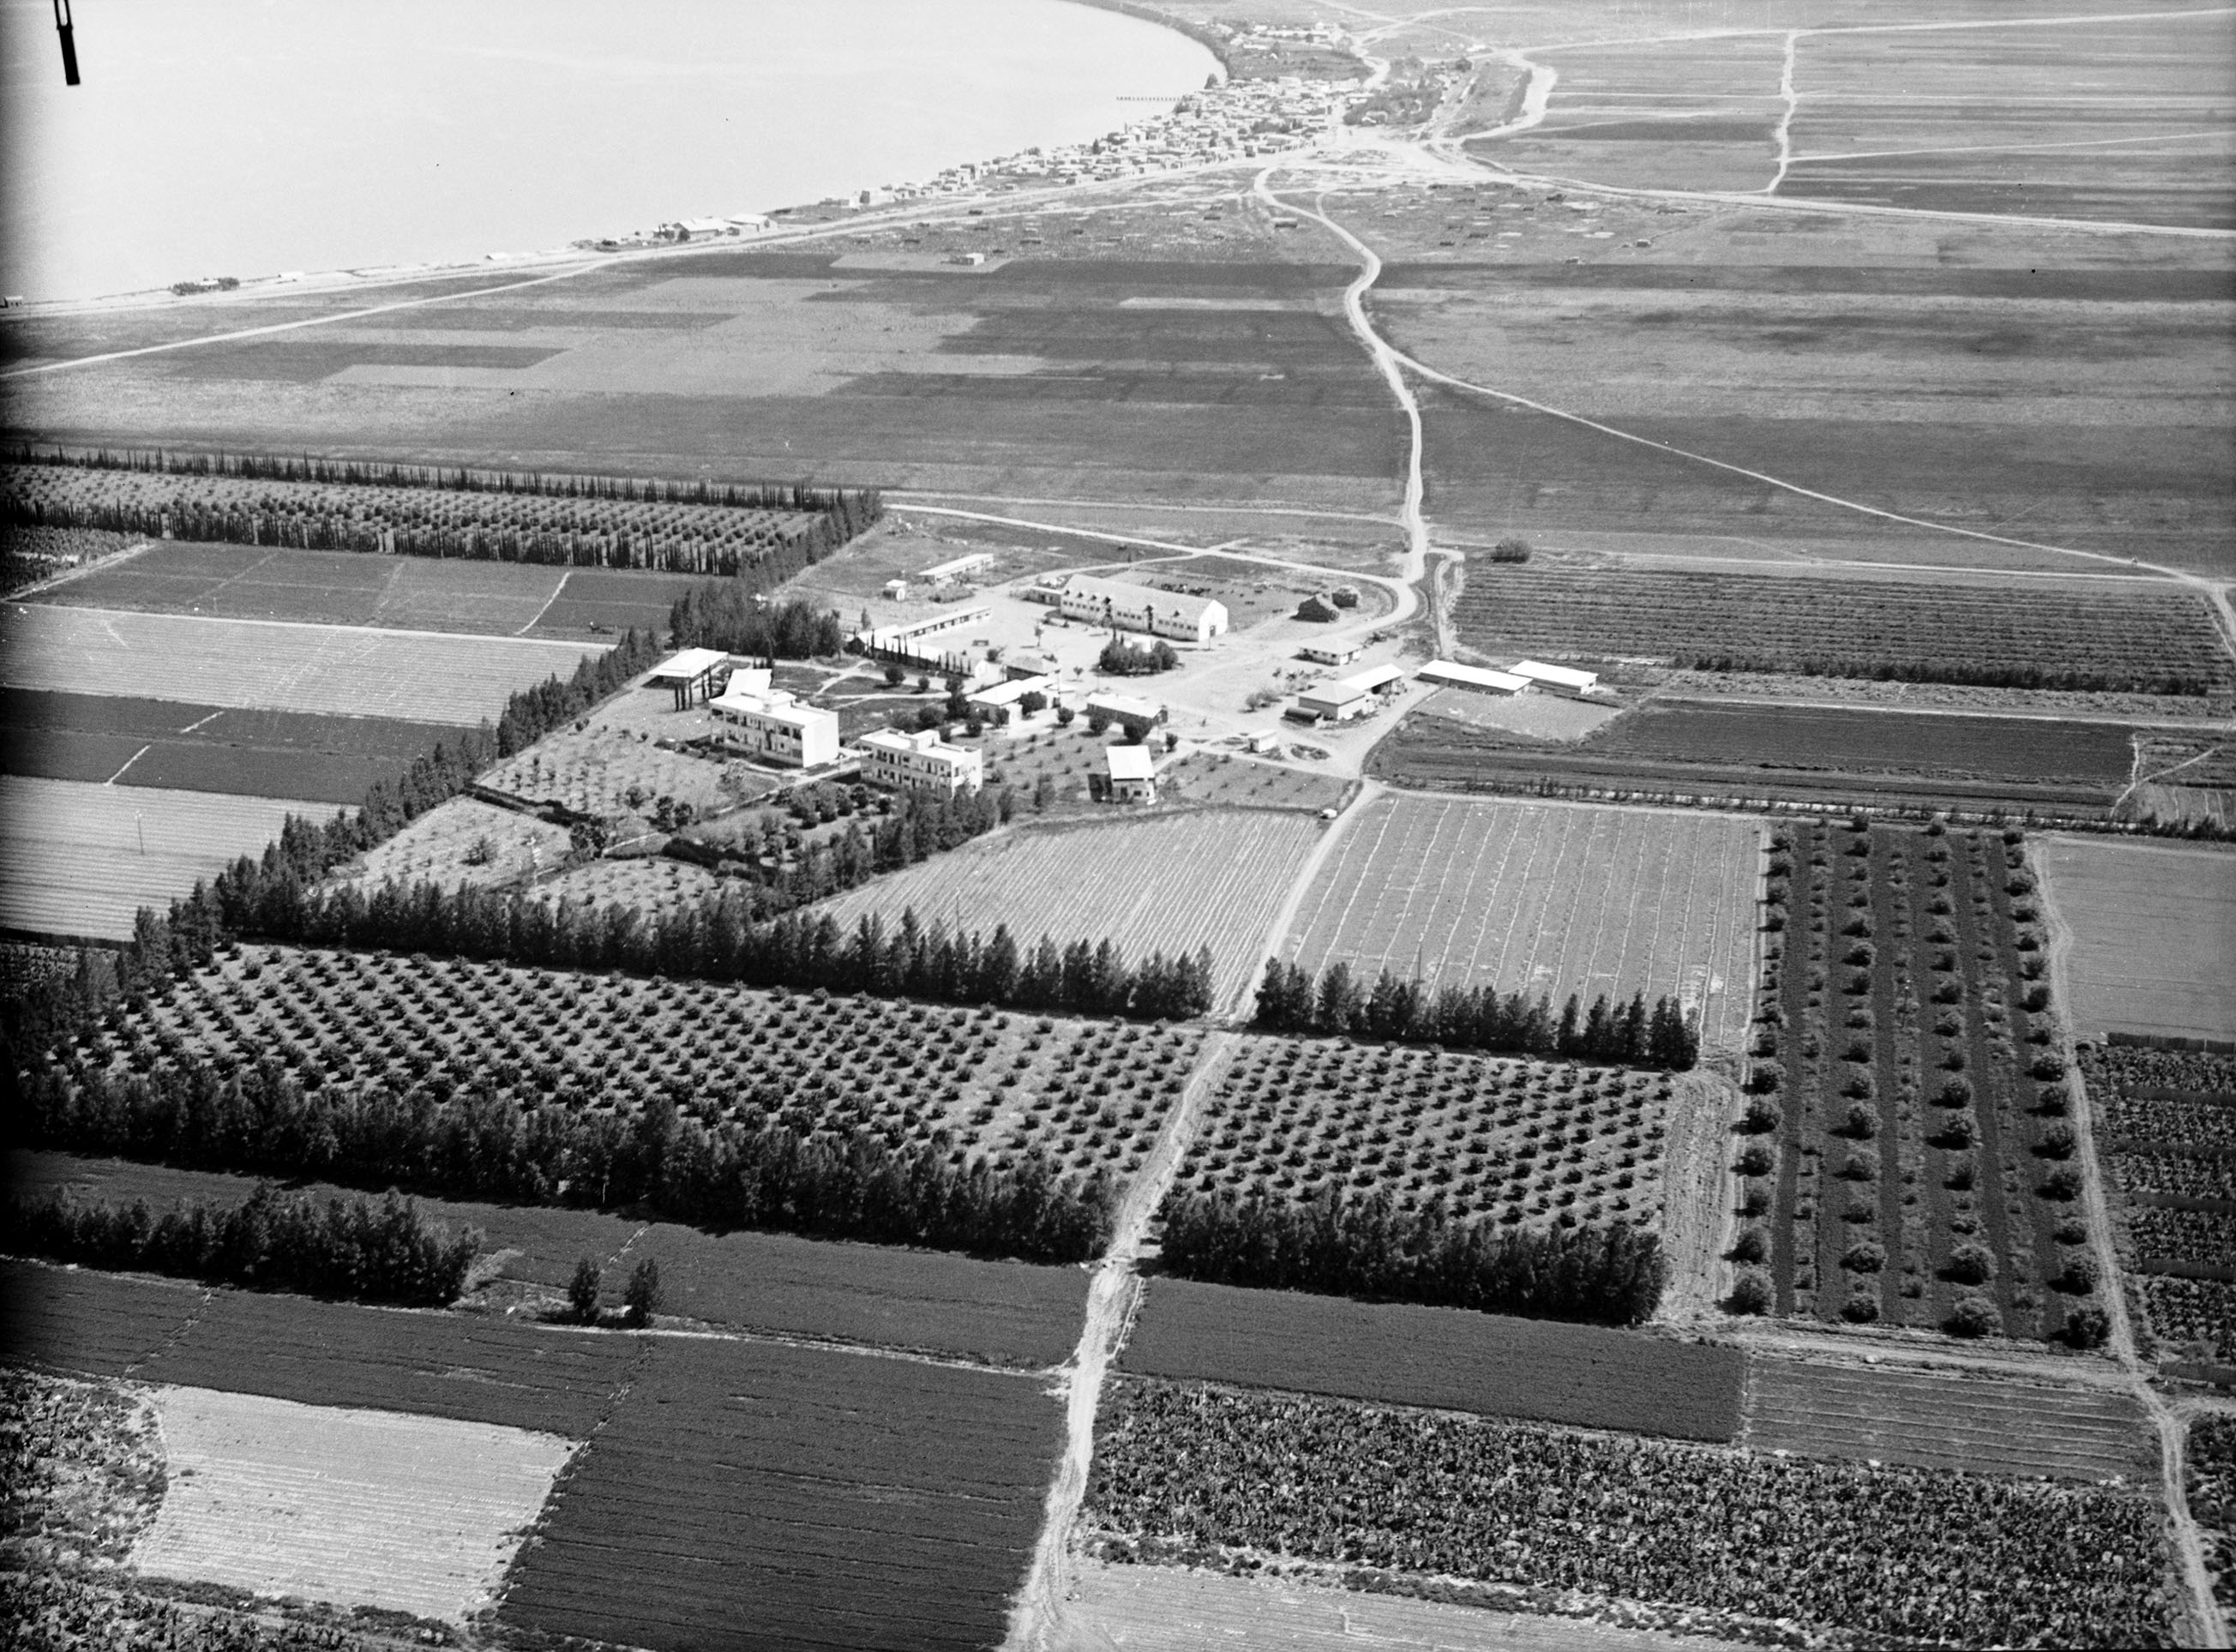 degania_jewish_agricultural_colony_south_end_of_lake_galilee_1931_oct_matpc_15823_1.jpg